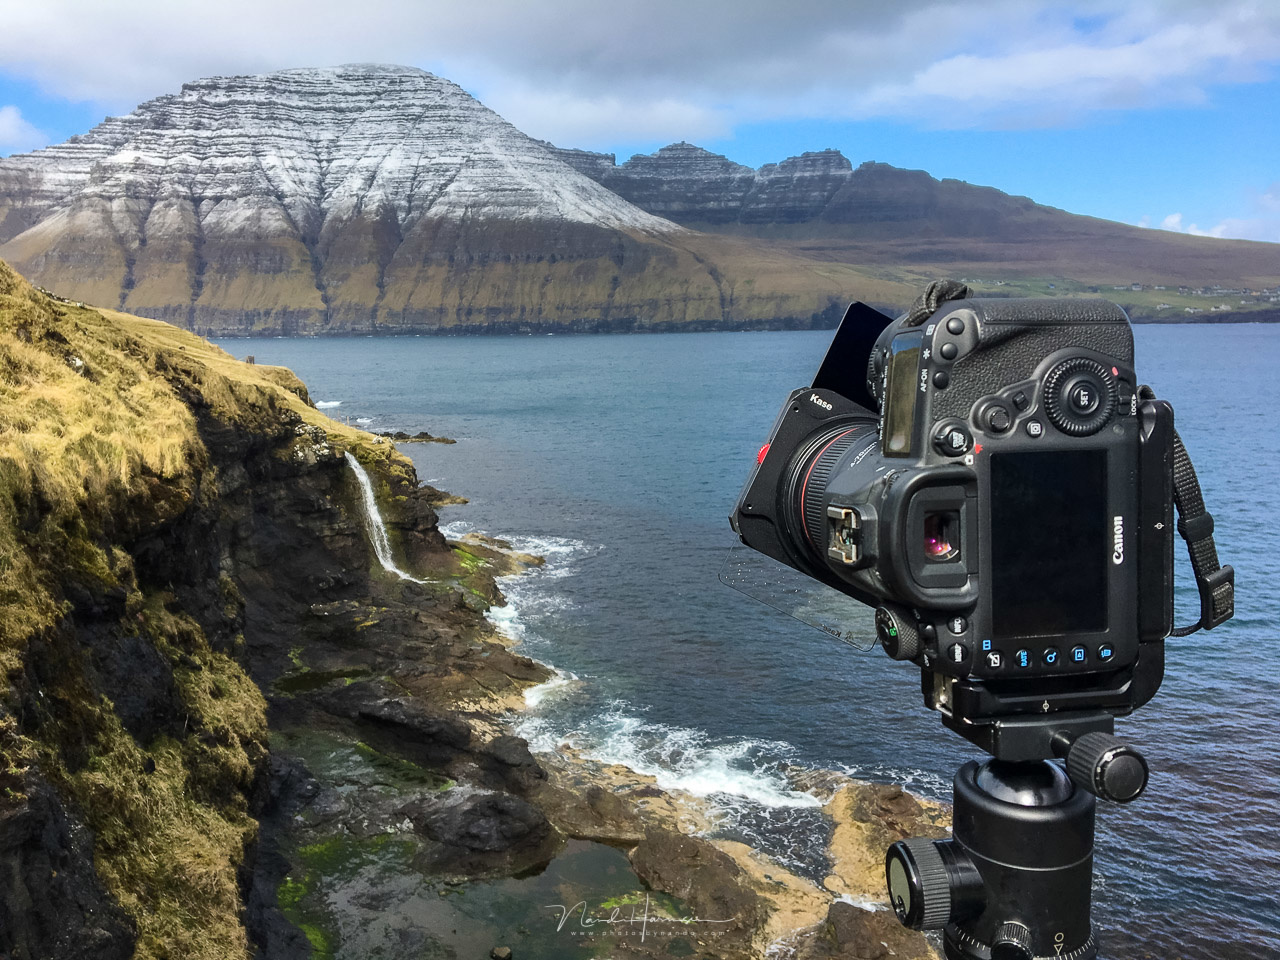 Photographing at the Faroe Islands. I use six pillars for my landscape photography, which forces me to look at the landscape in a very different way.